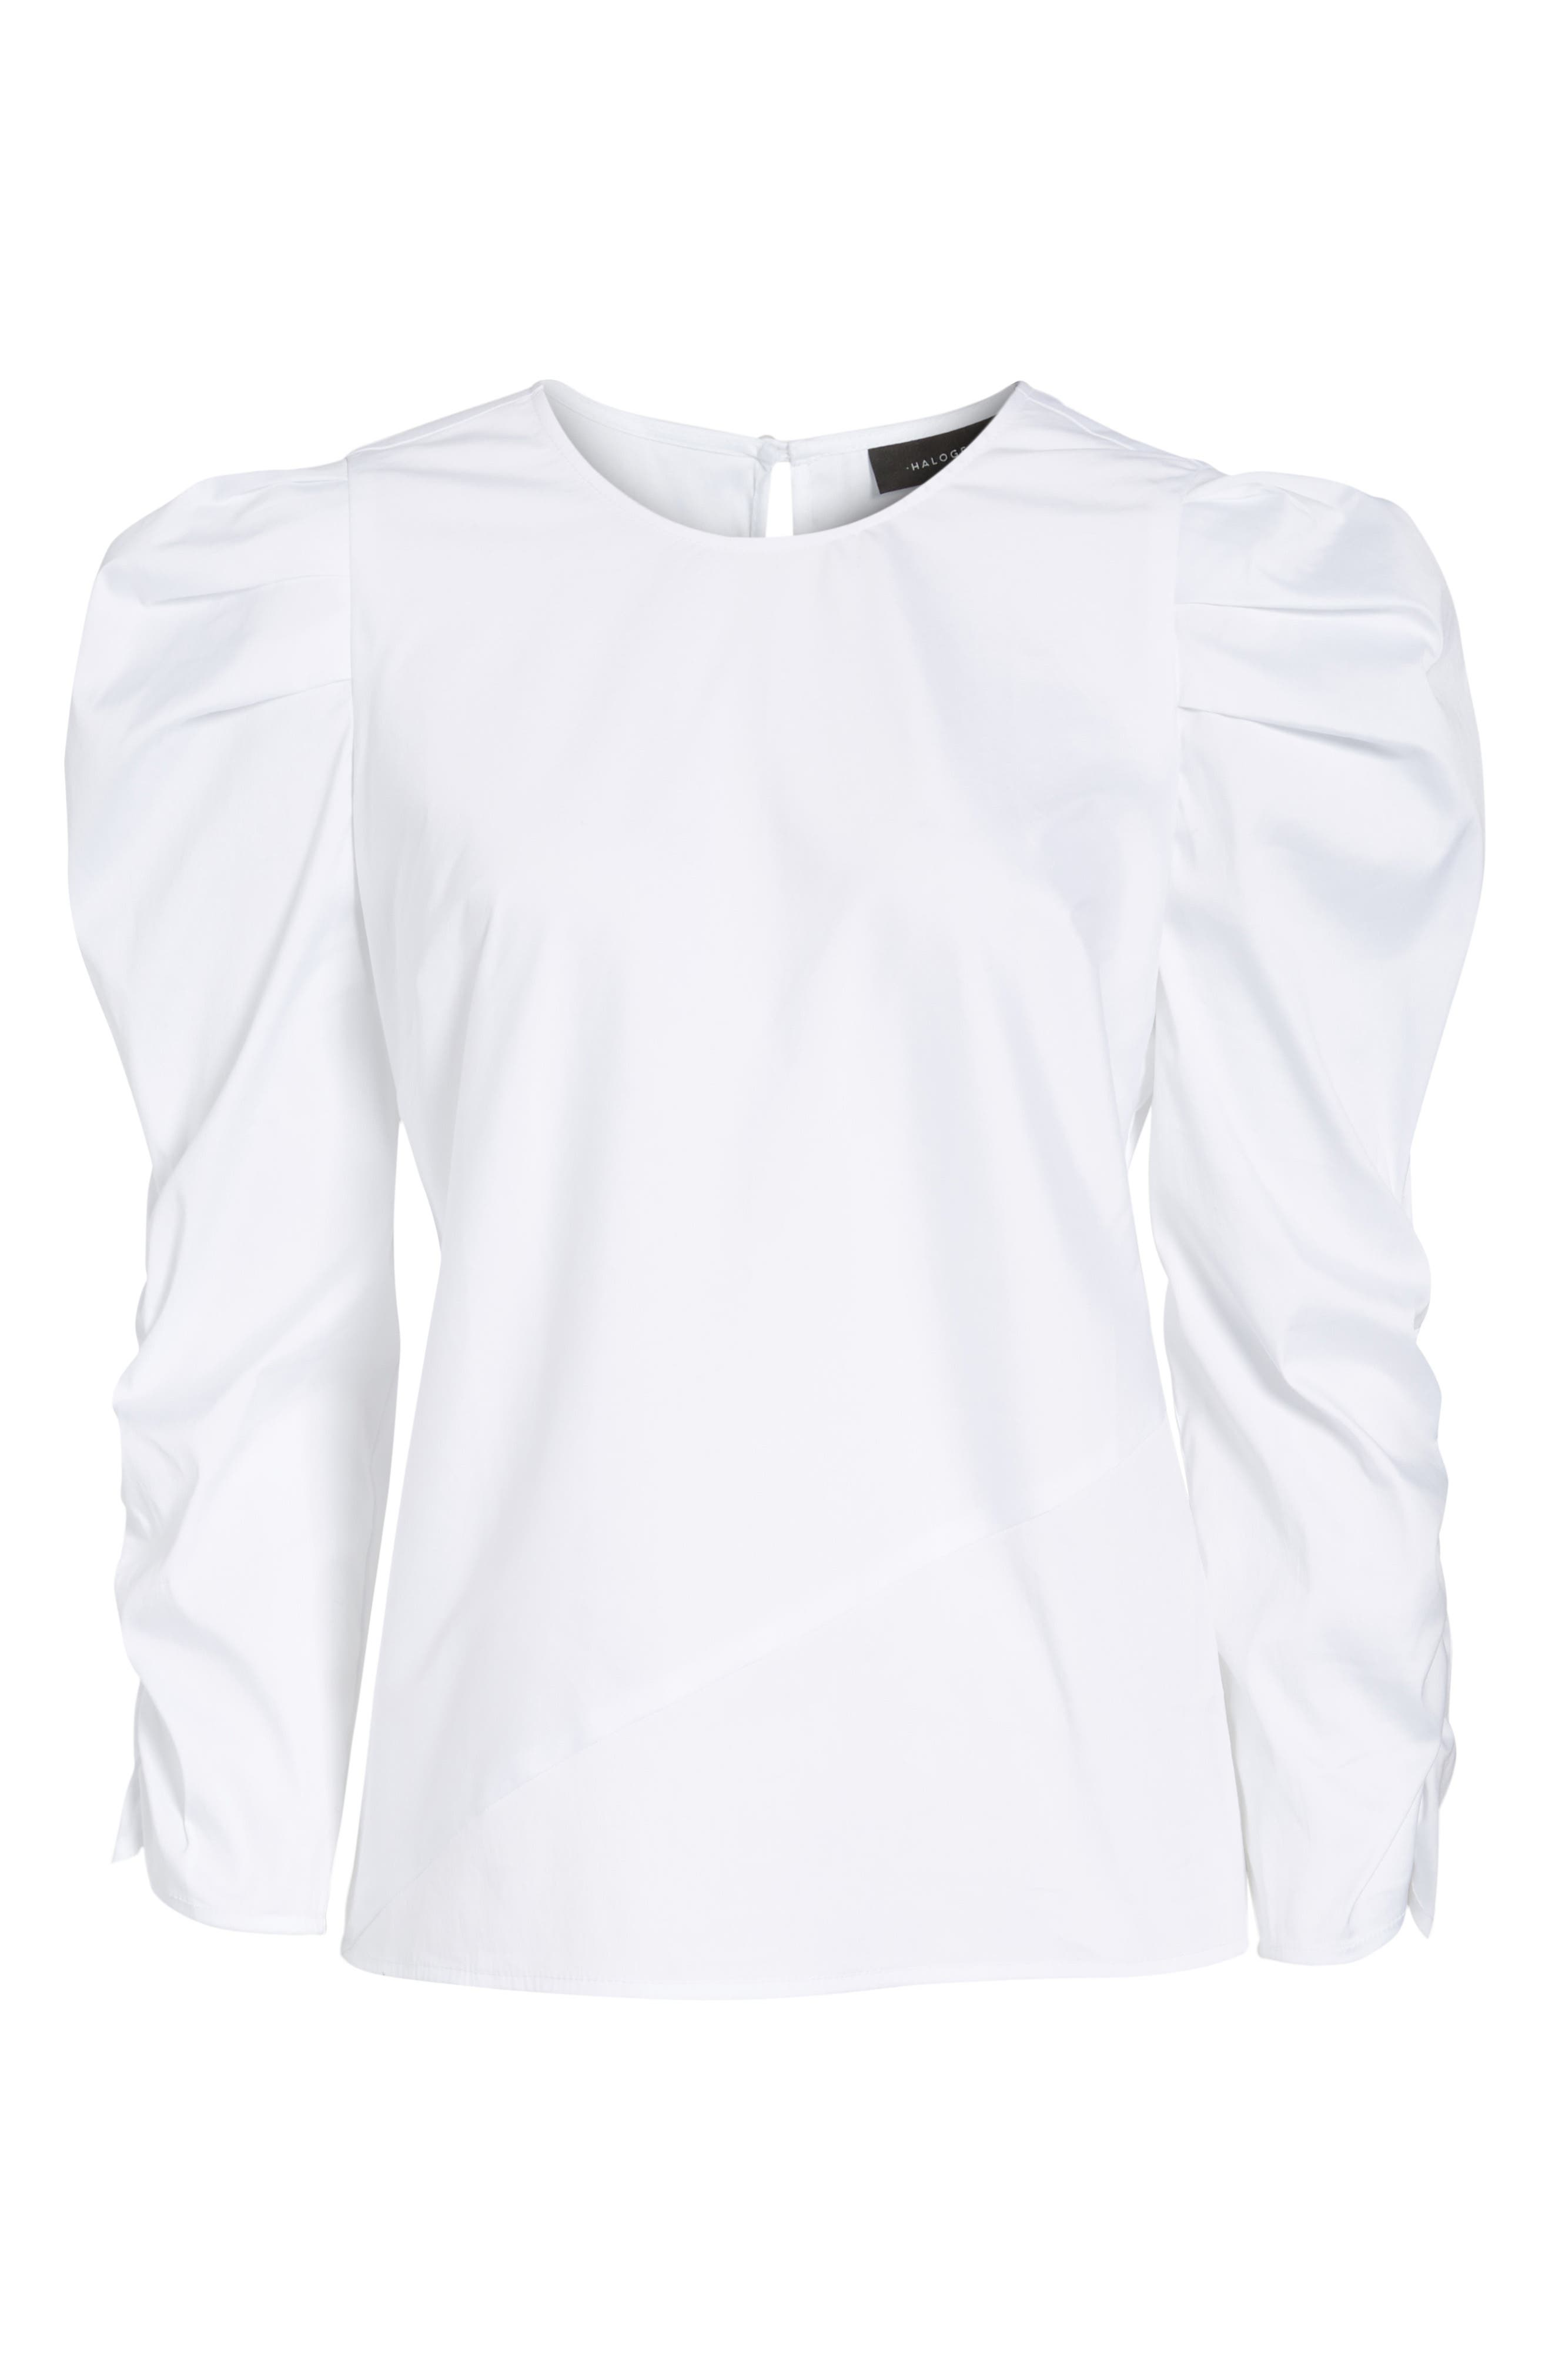 Ruched Sleeve Poplin Top,                             Alternate thumbnail 6, color,                             White